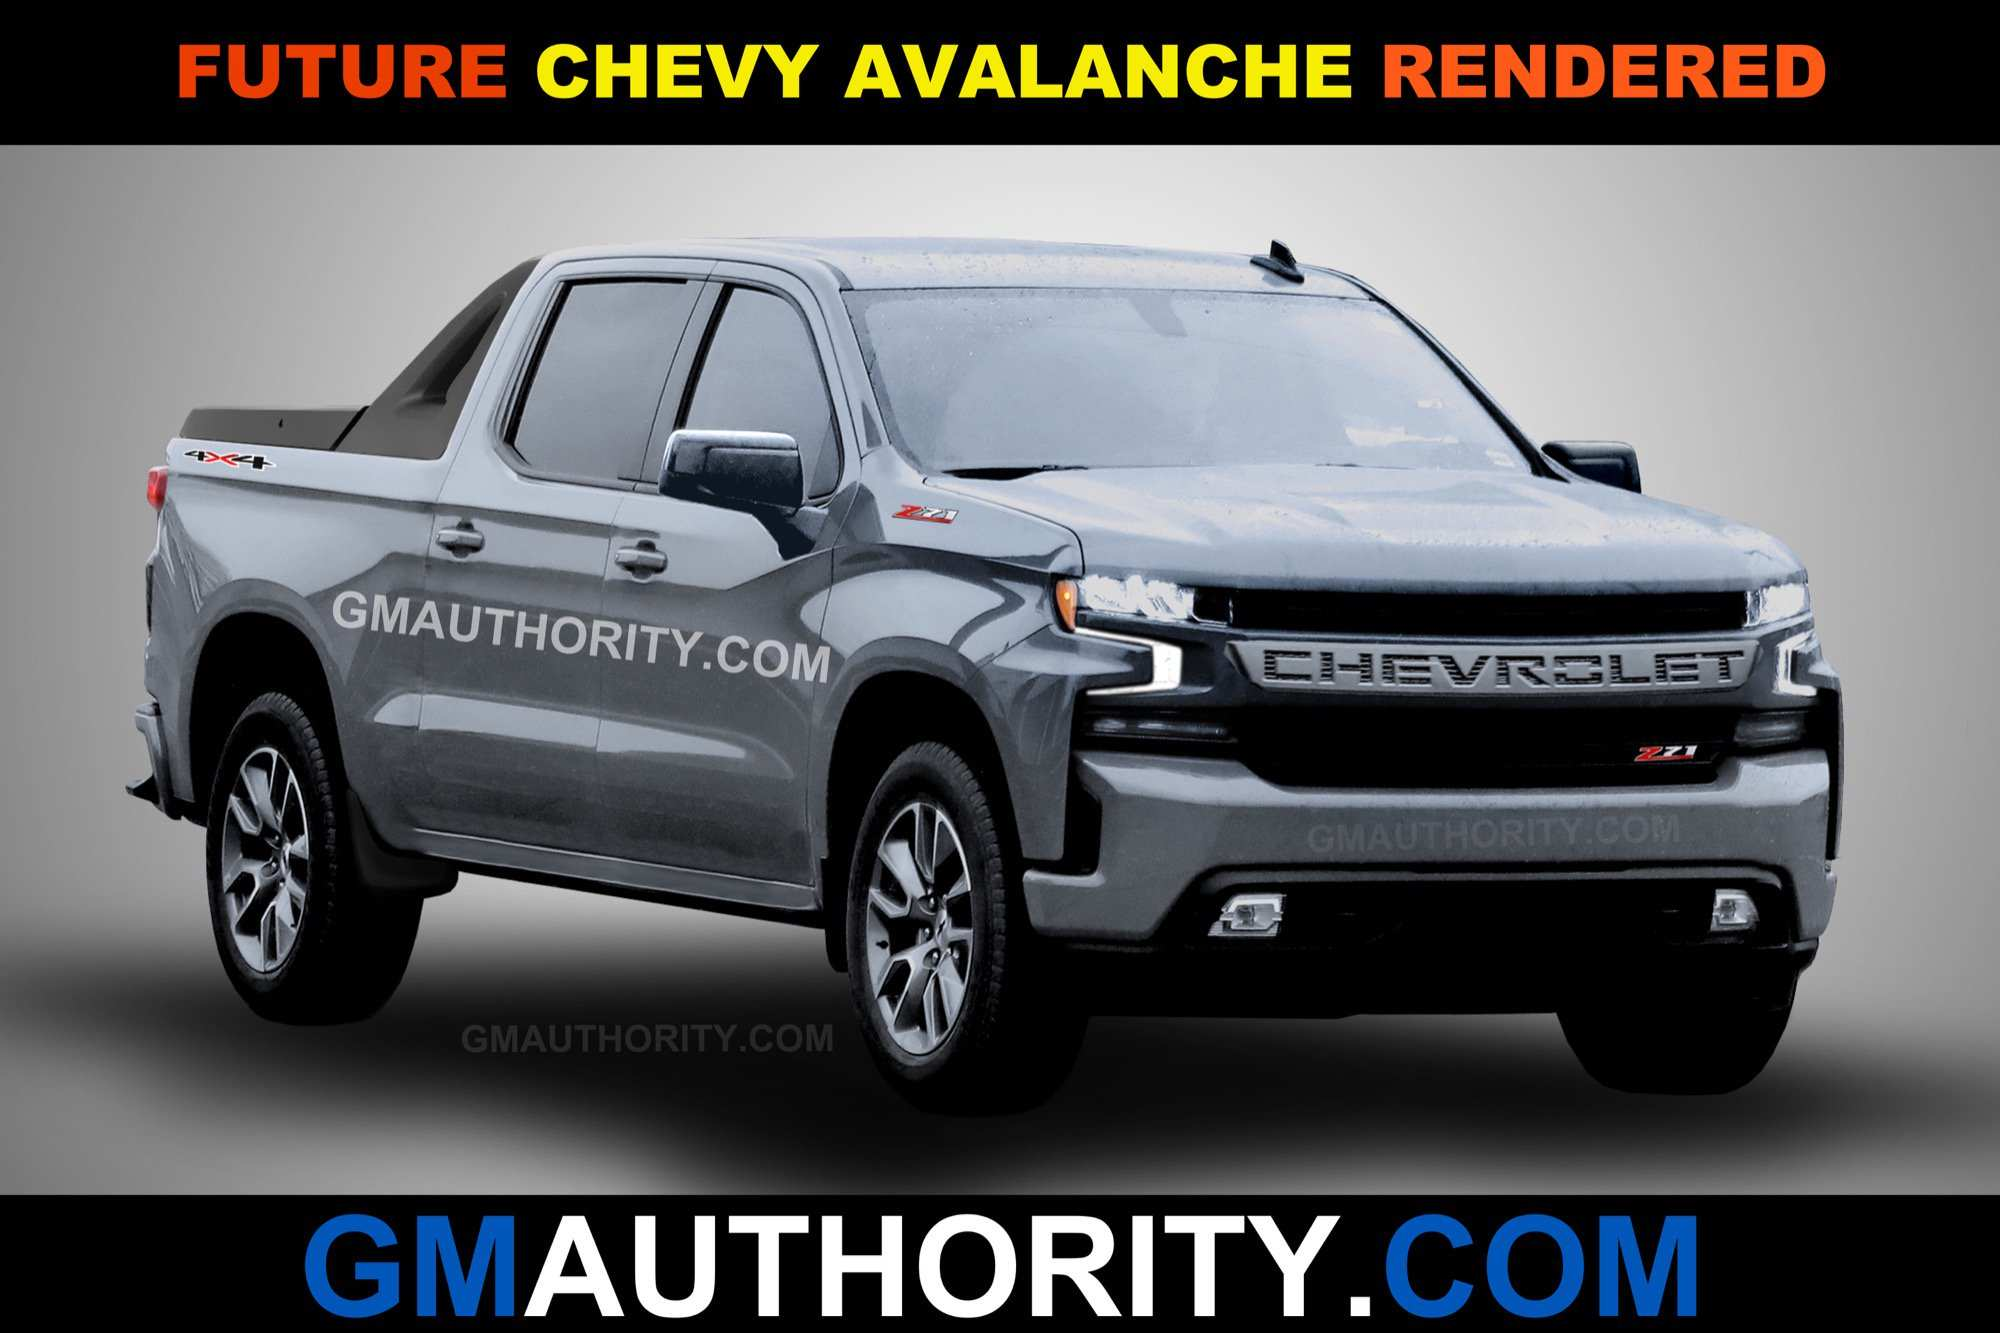 67 The Best 2019 Chevy Avalanche Price And Review